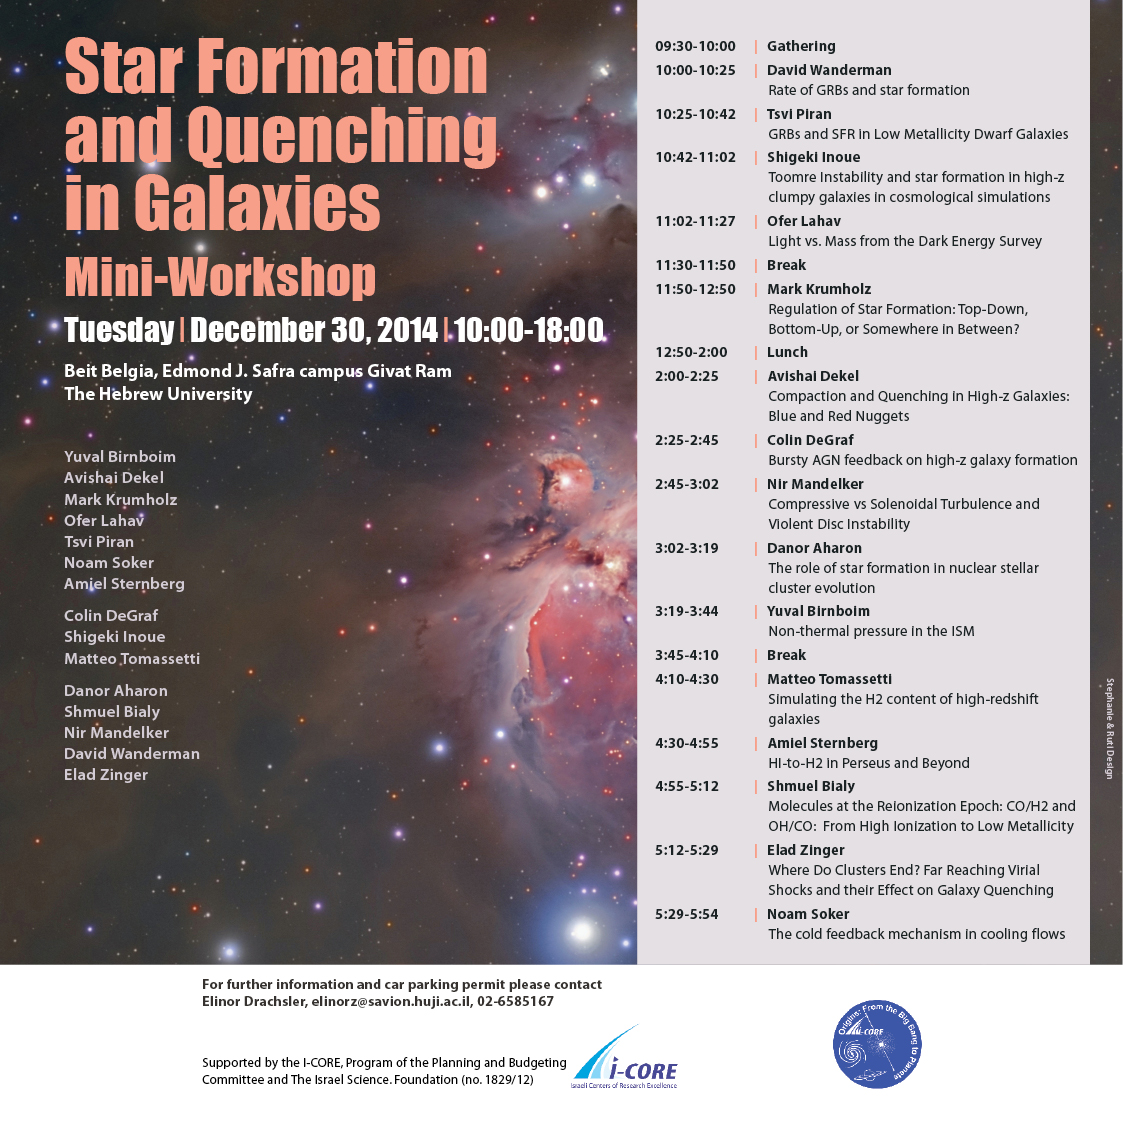 Star Formation and Quenching in Galaxies Mini-Workshop poster